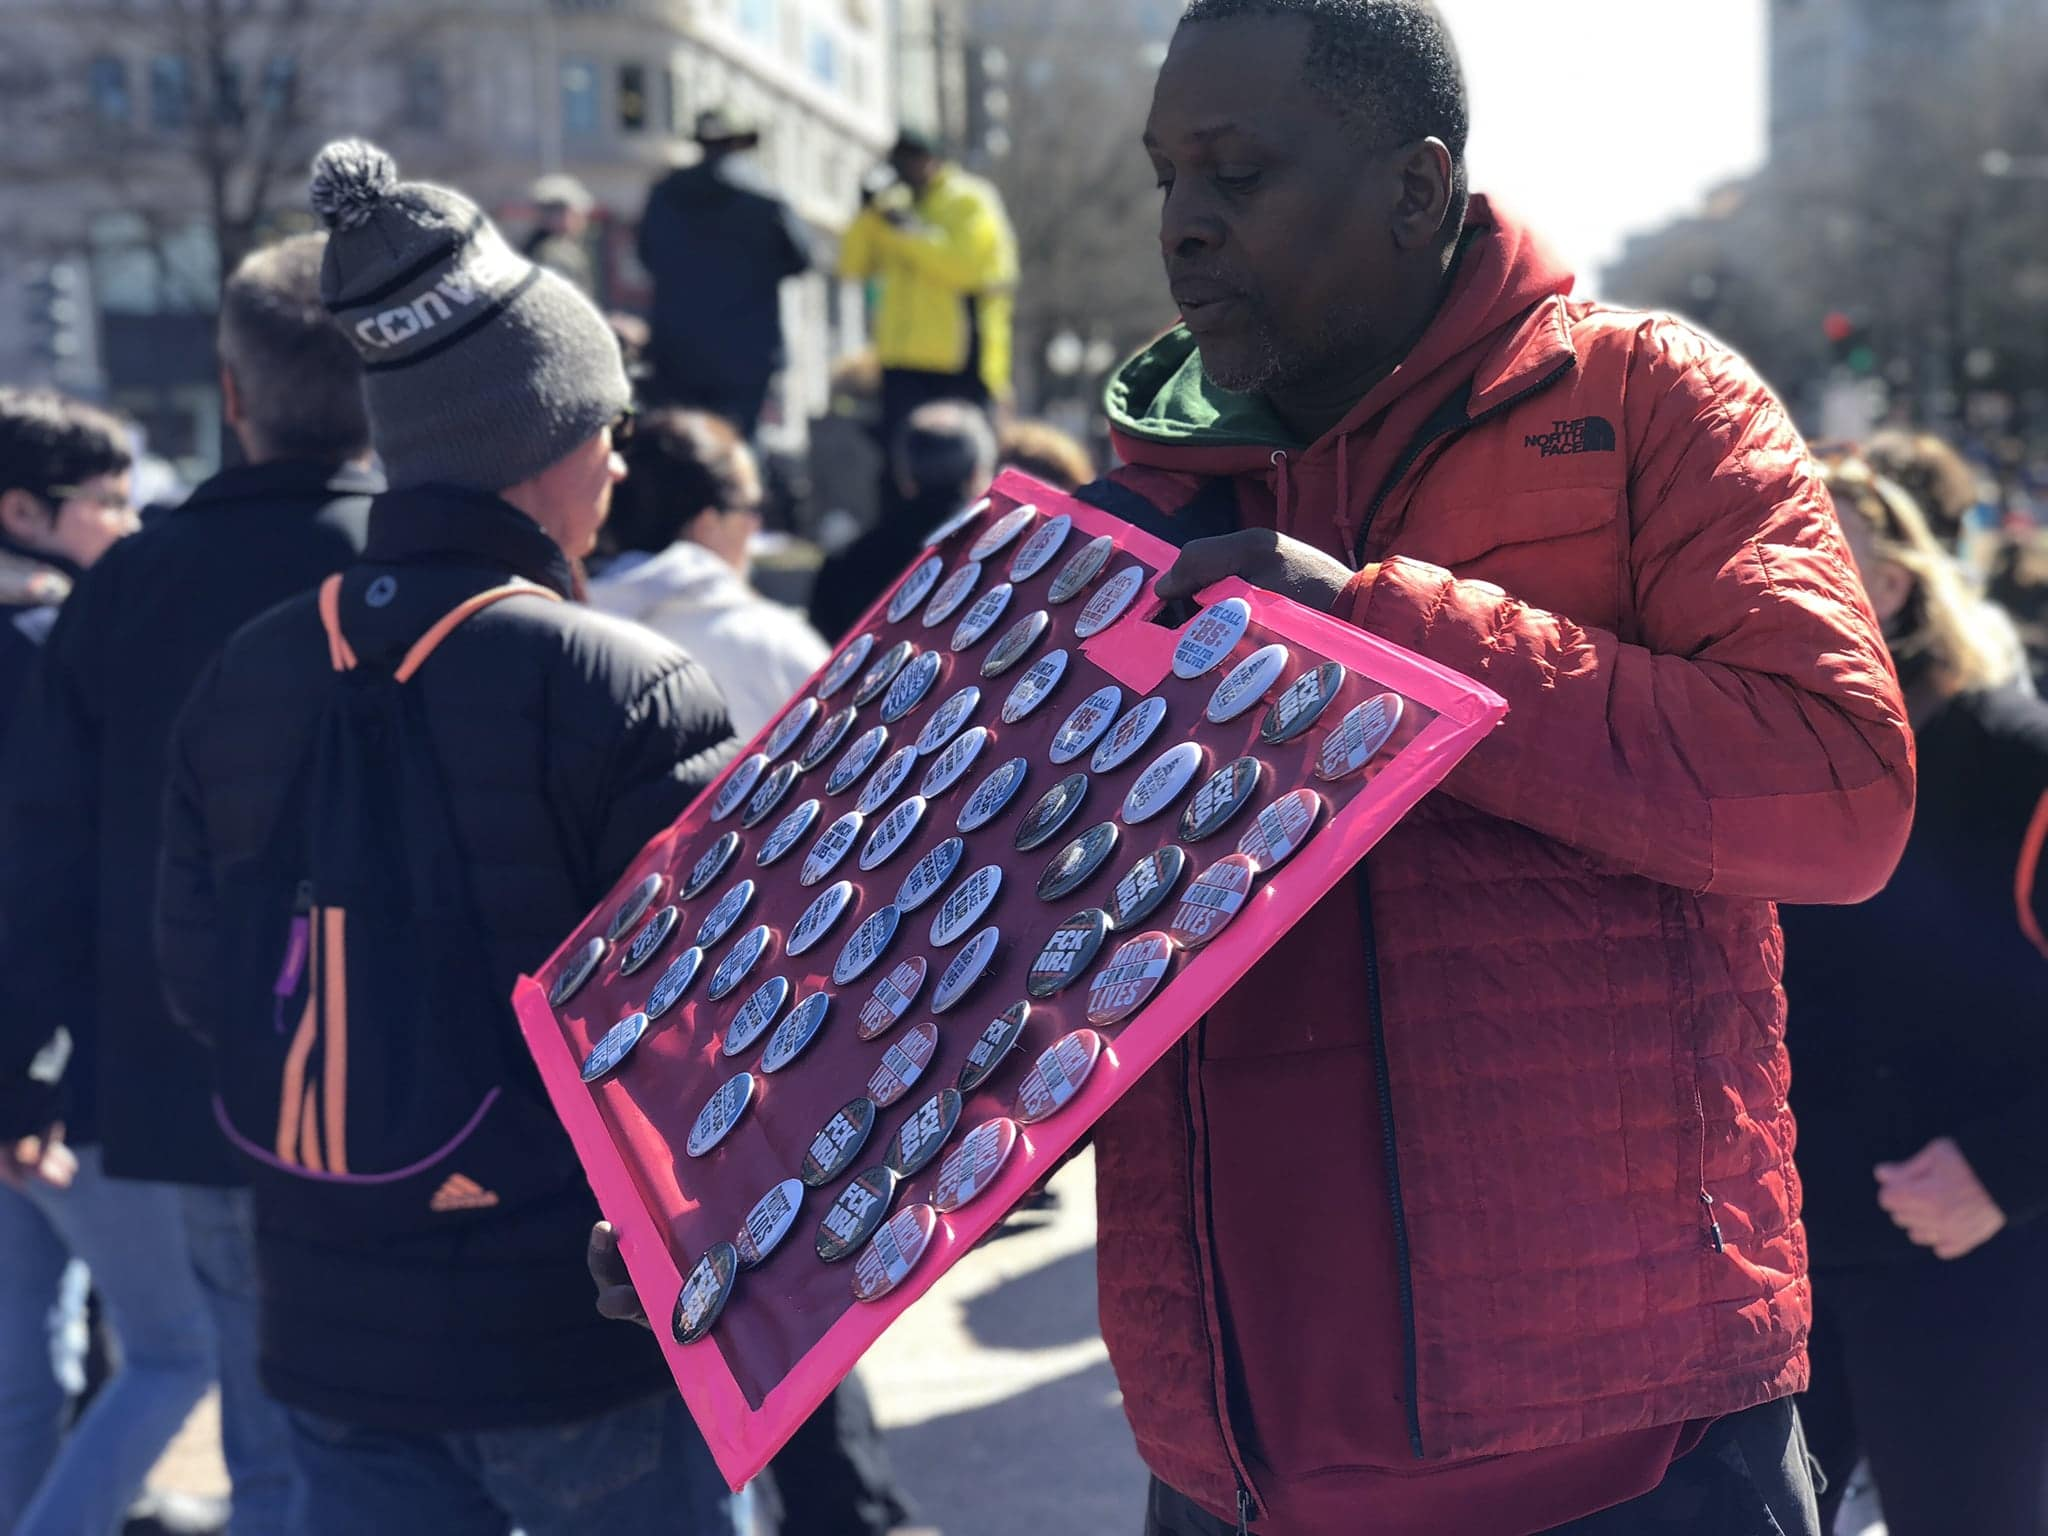 A vendor sells buttons at march